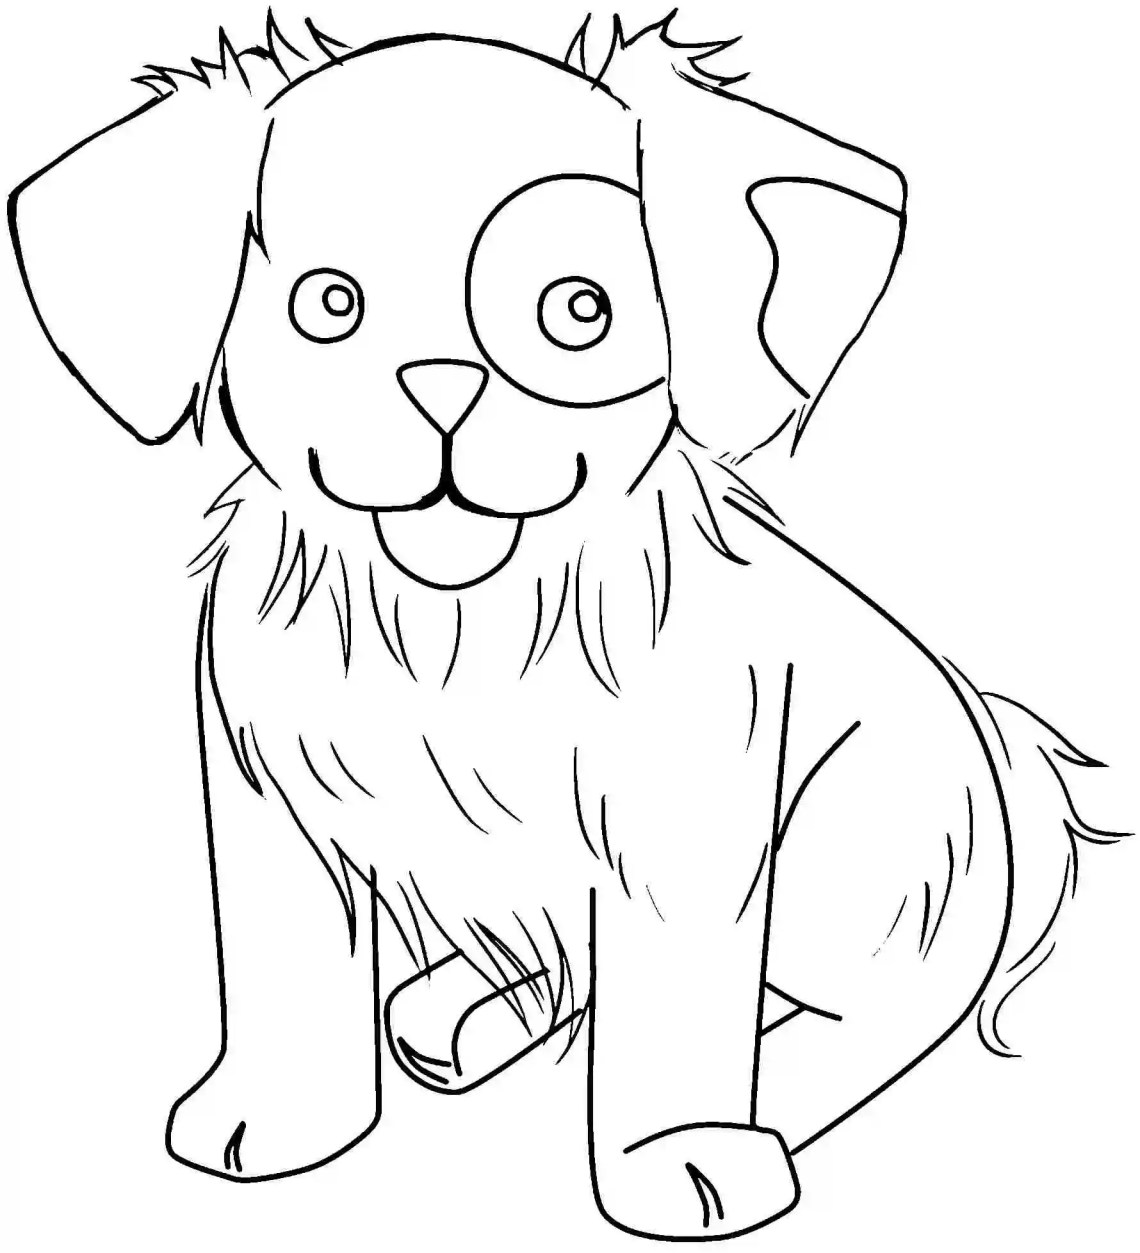 Free Printable Cute Animal Coloring Pages - Coloring Home | free online coloring pages animals